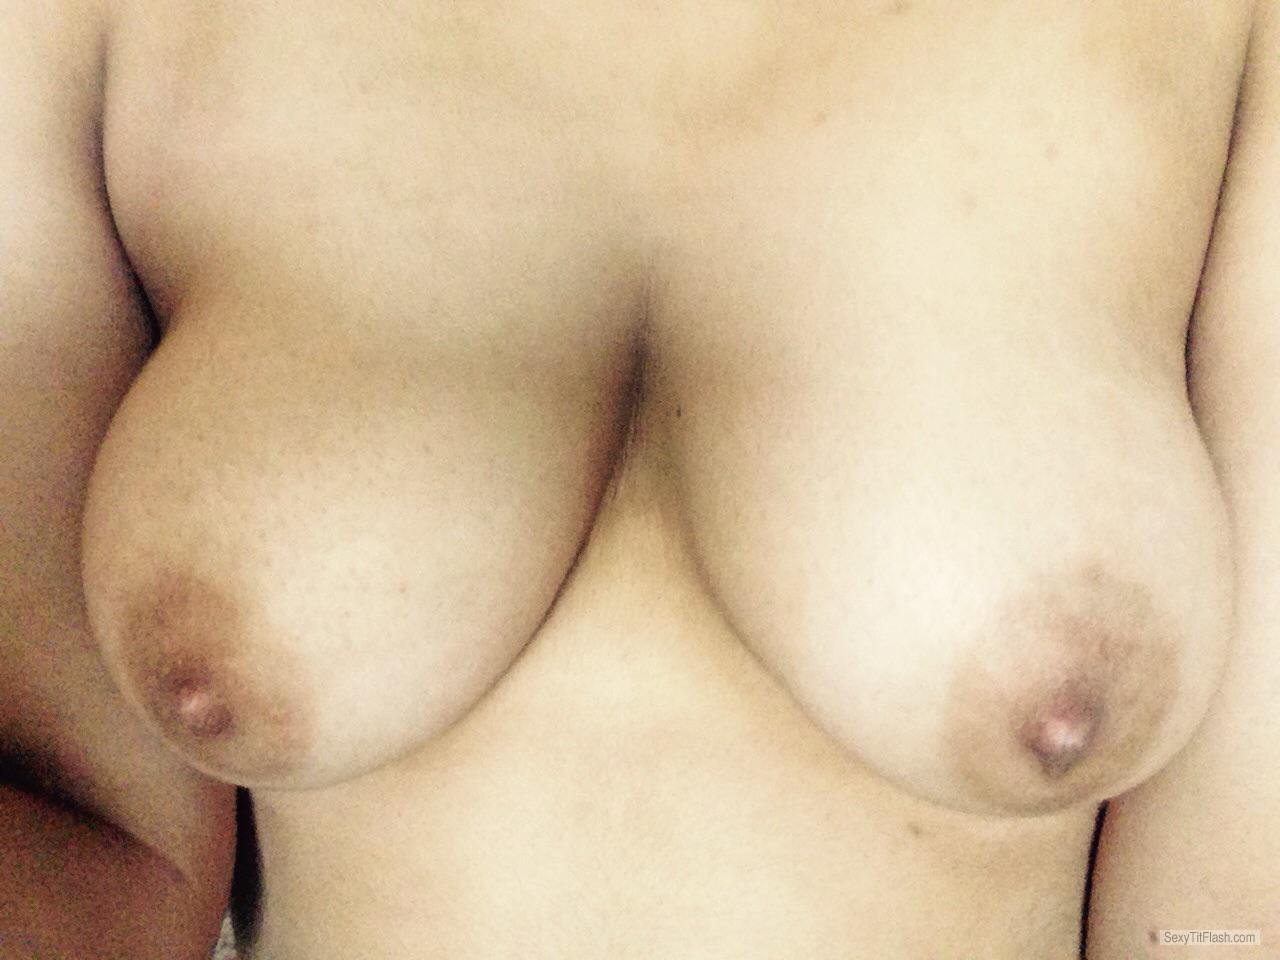 Tit Flash: My Big Tits - Hottie from United Kingdom